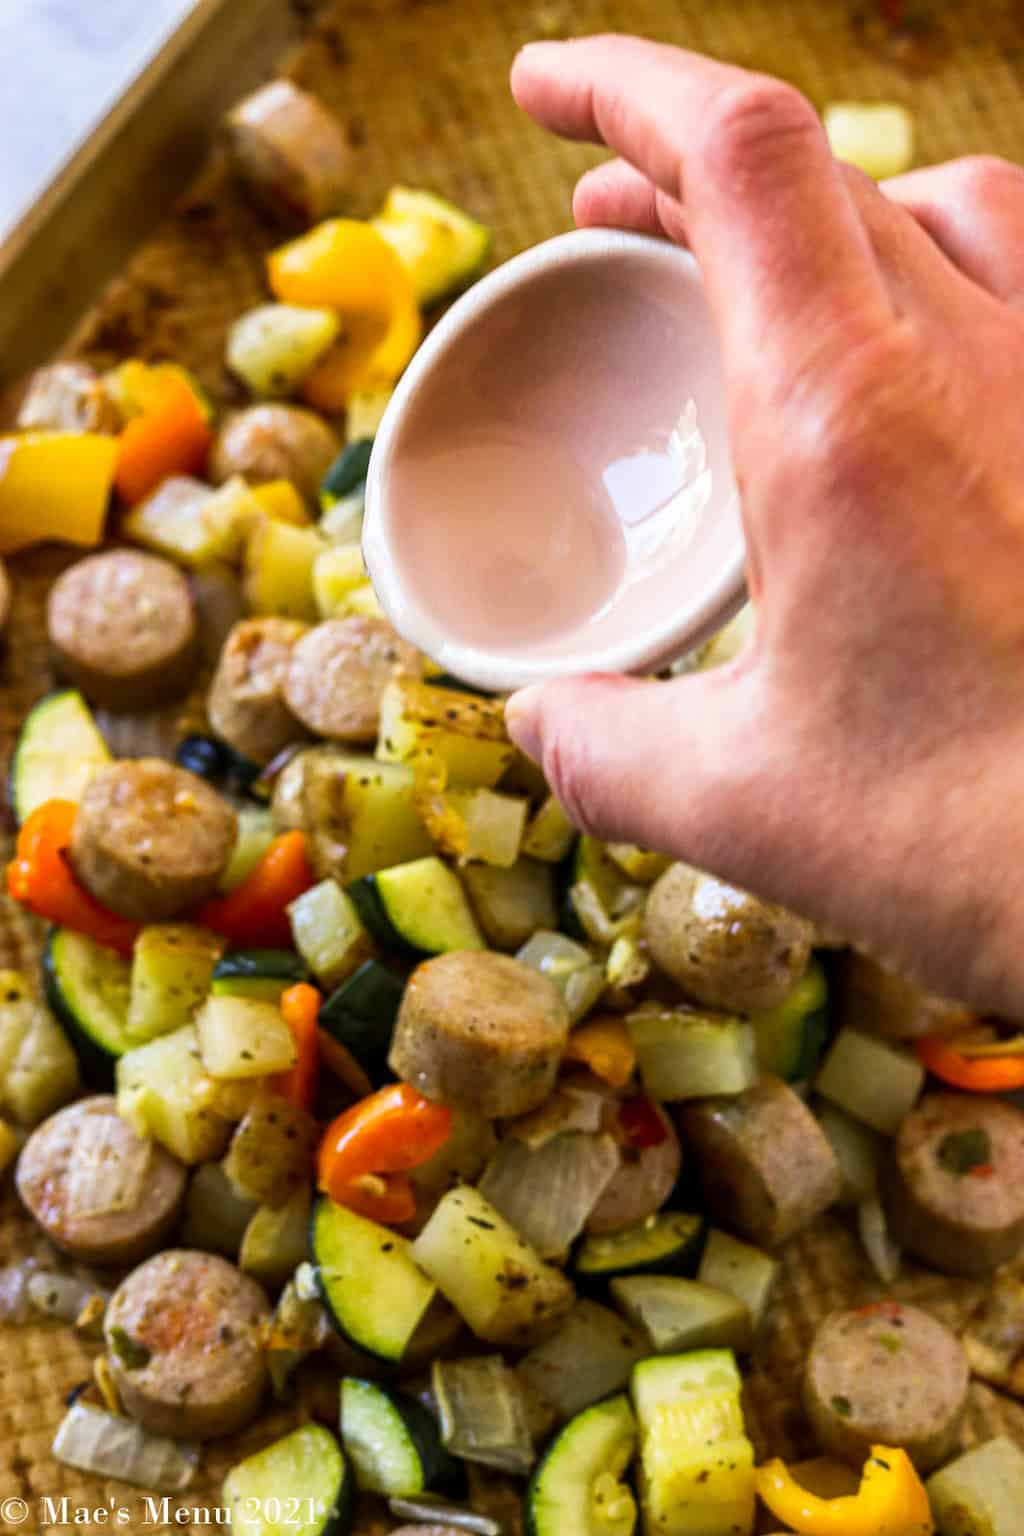 Pouring white balsamic vinegar over a roasting pan of veggies and sausage